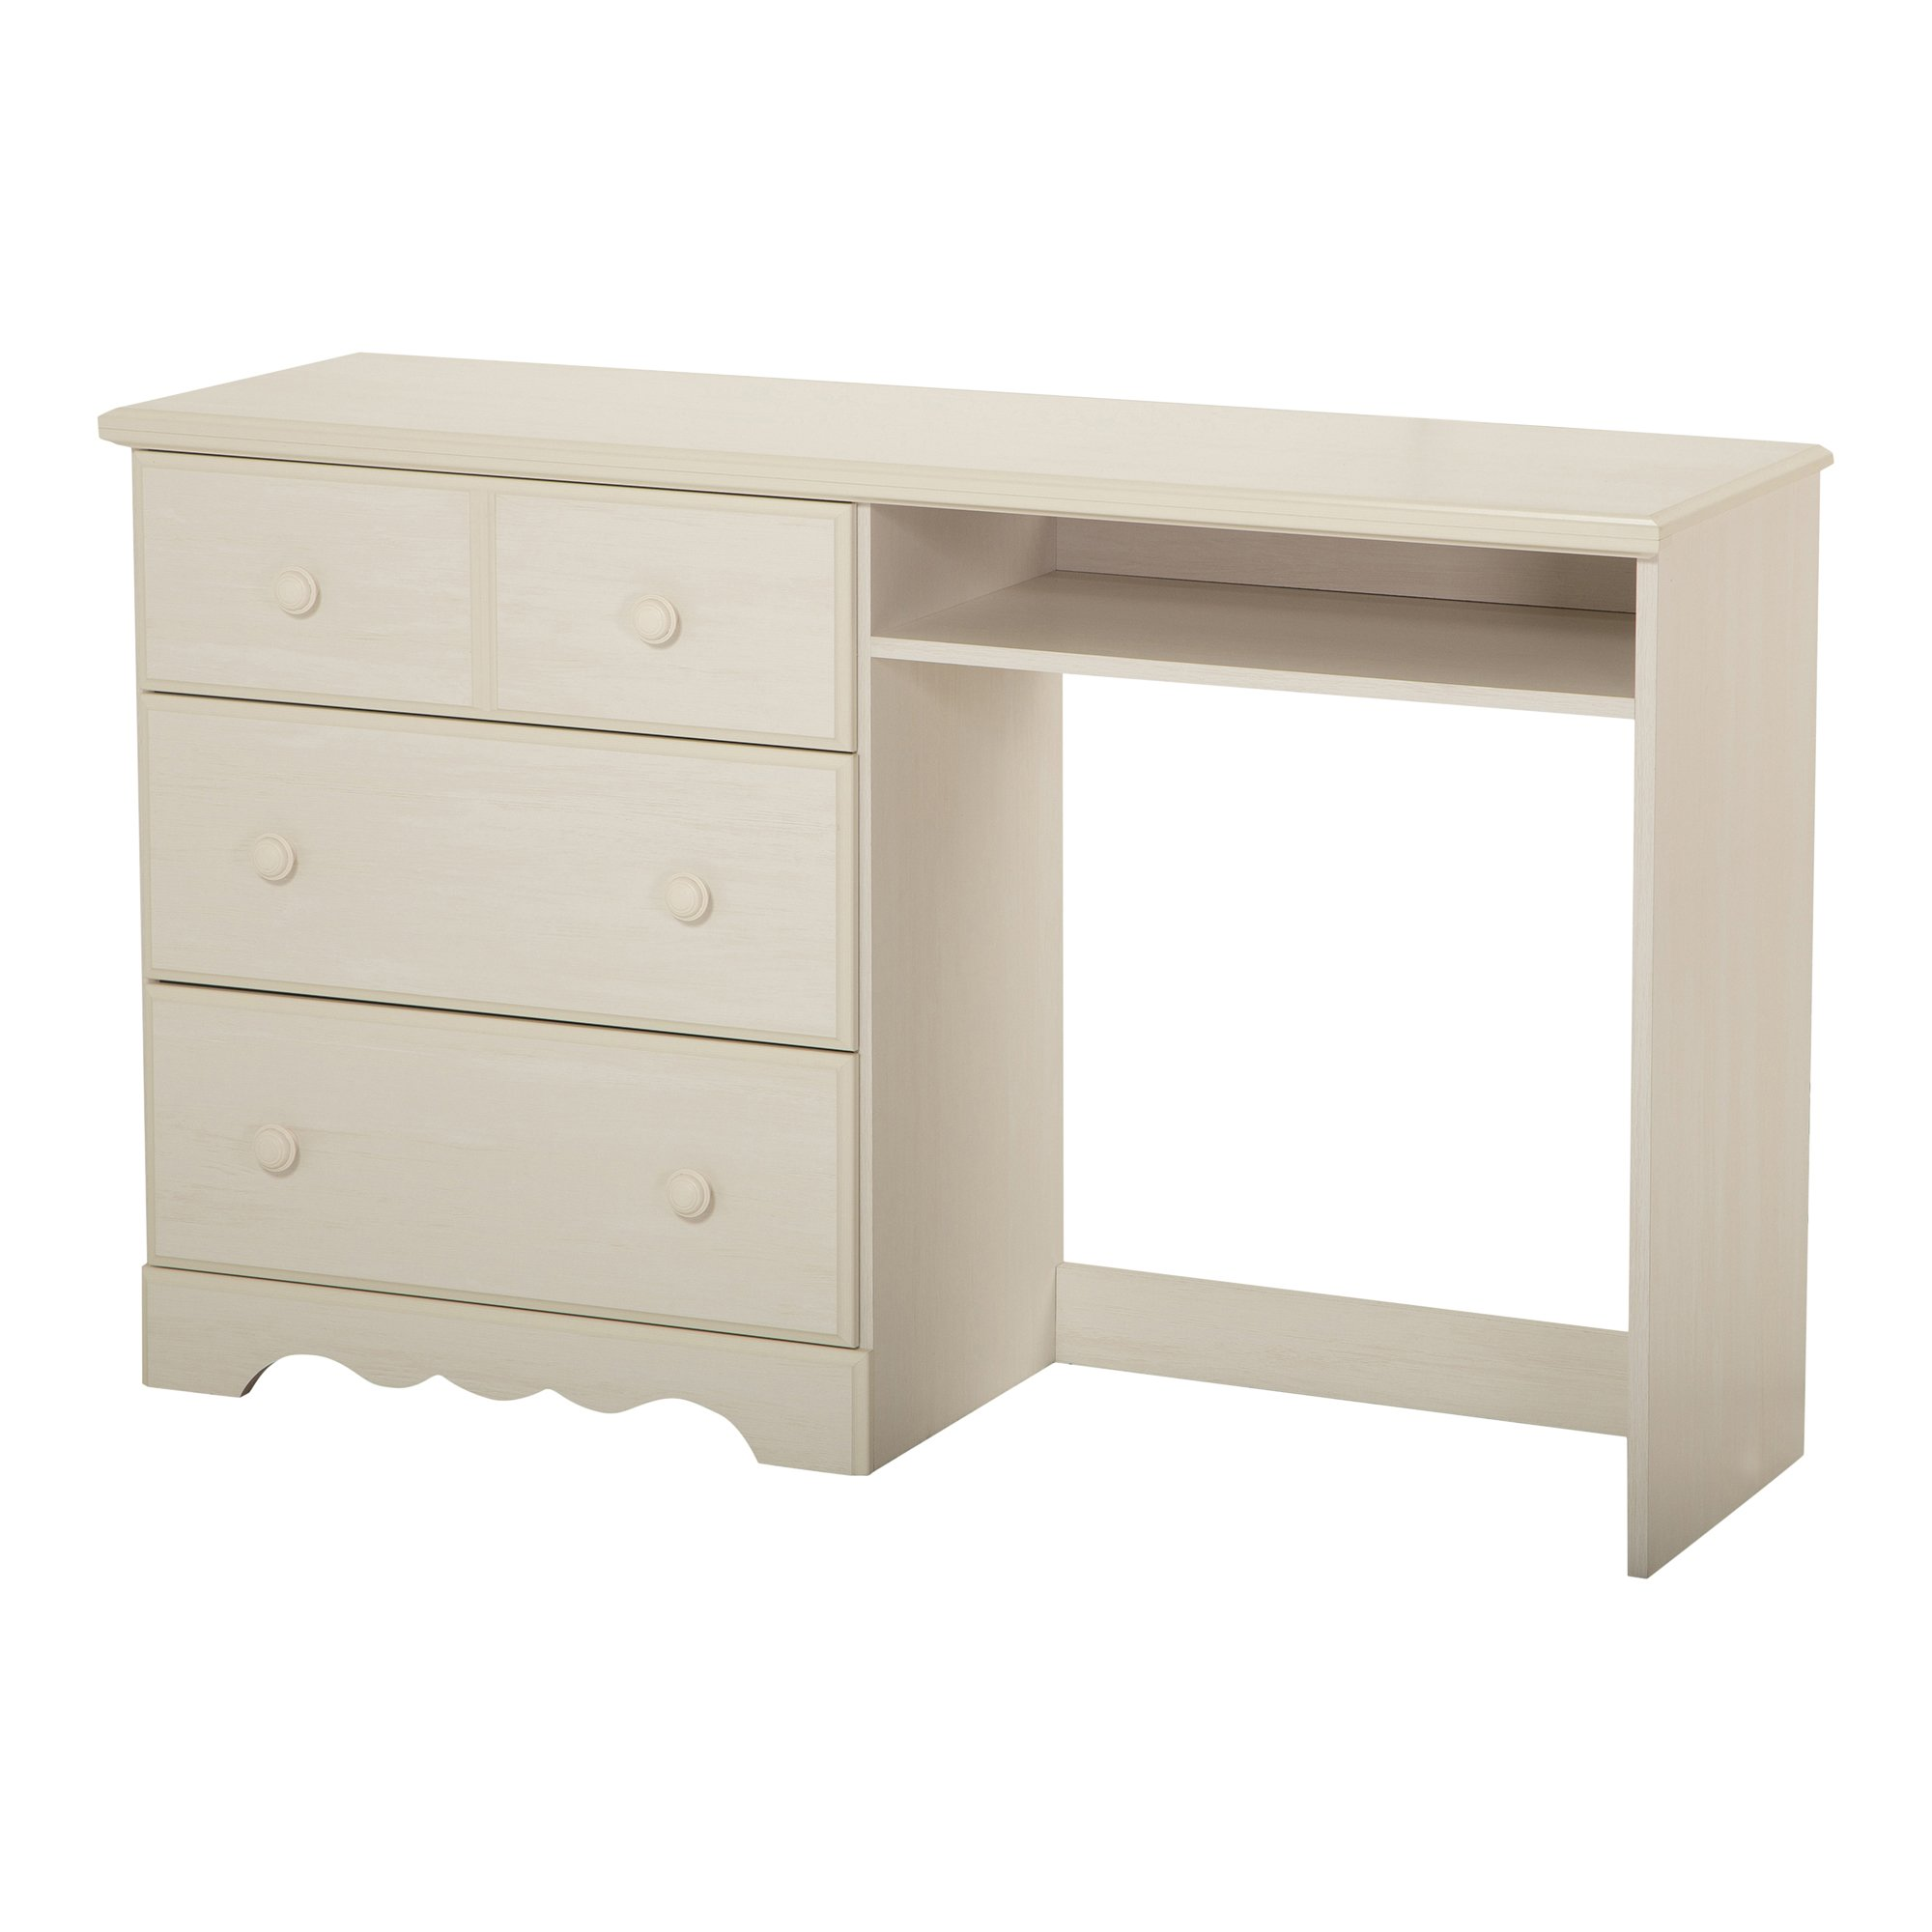 South Shore Summer Breeze Desk with 3 Drawers, White Wash